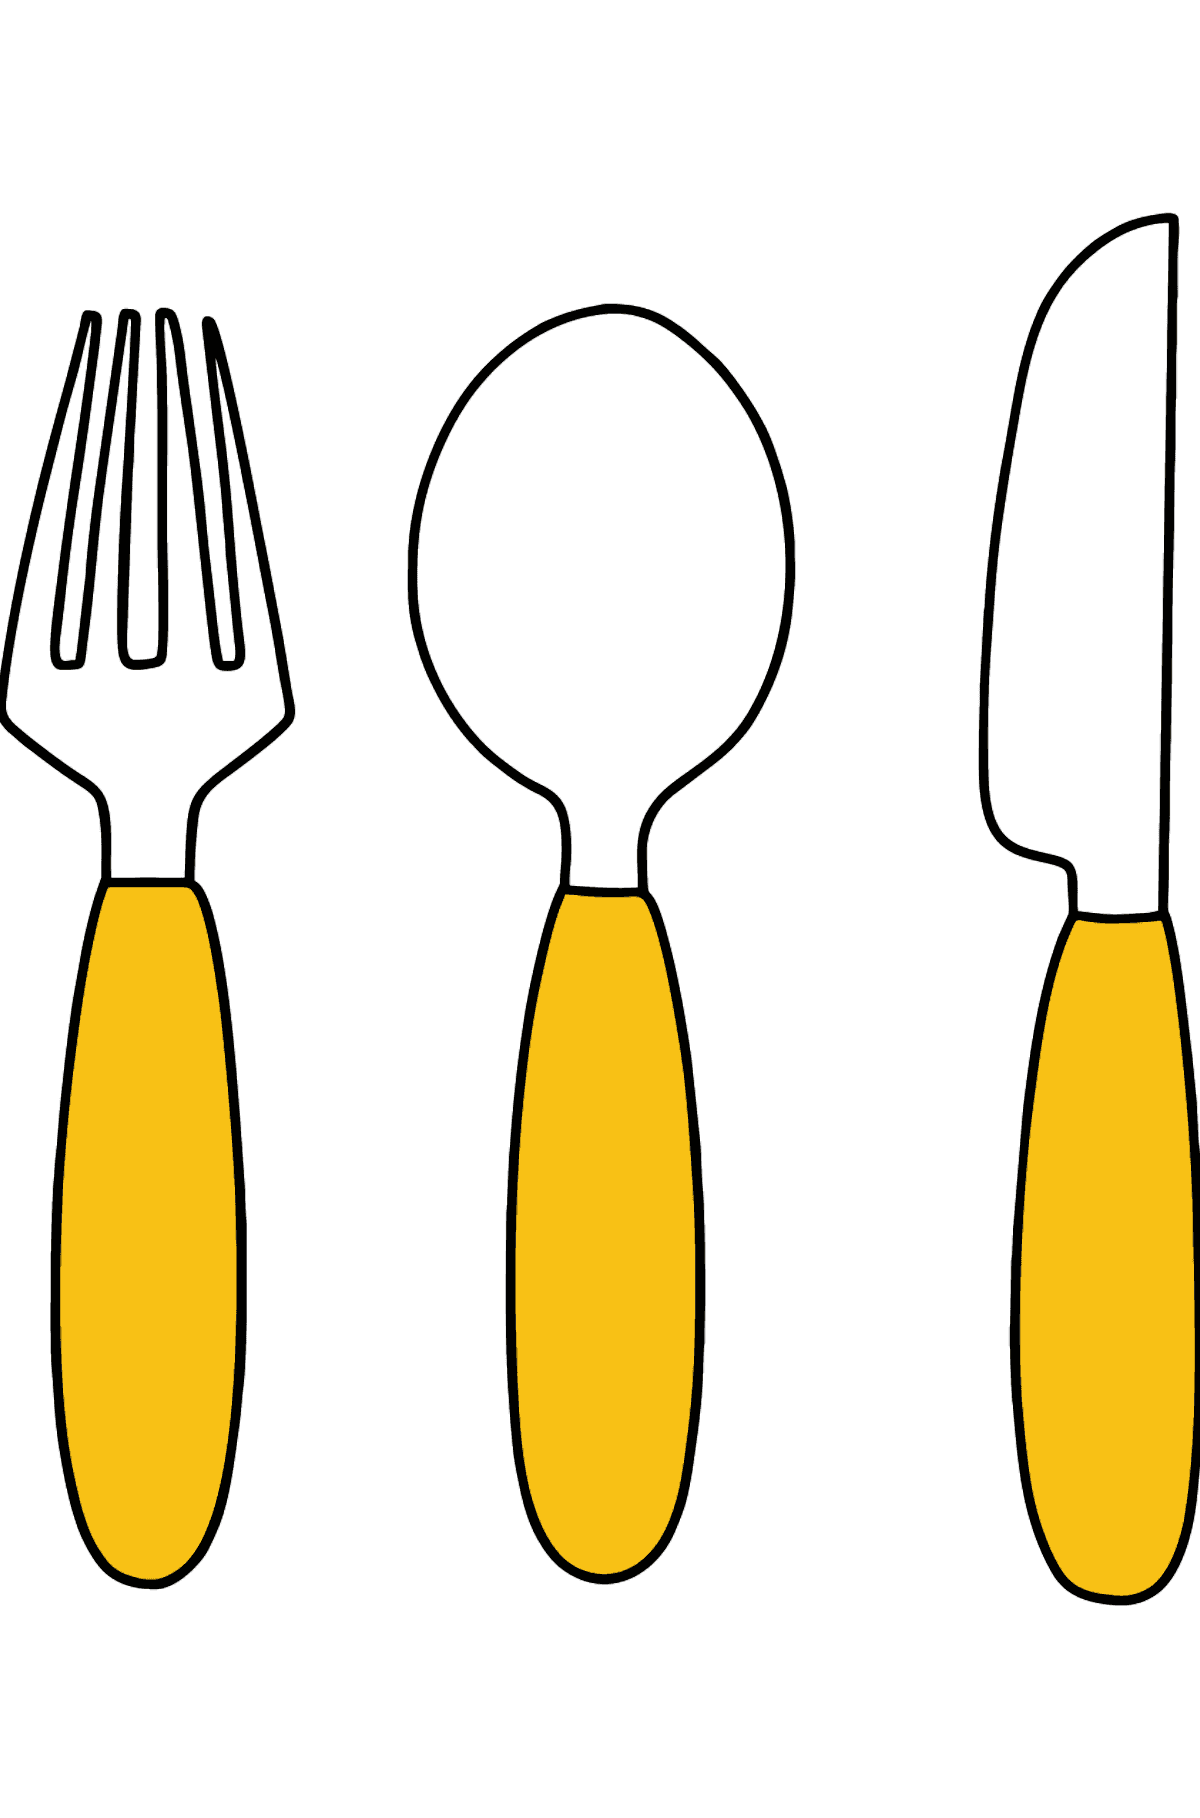 Cutlery coloring page - Coloring Pages for Kids